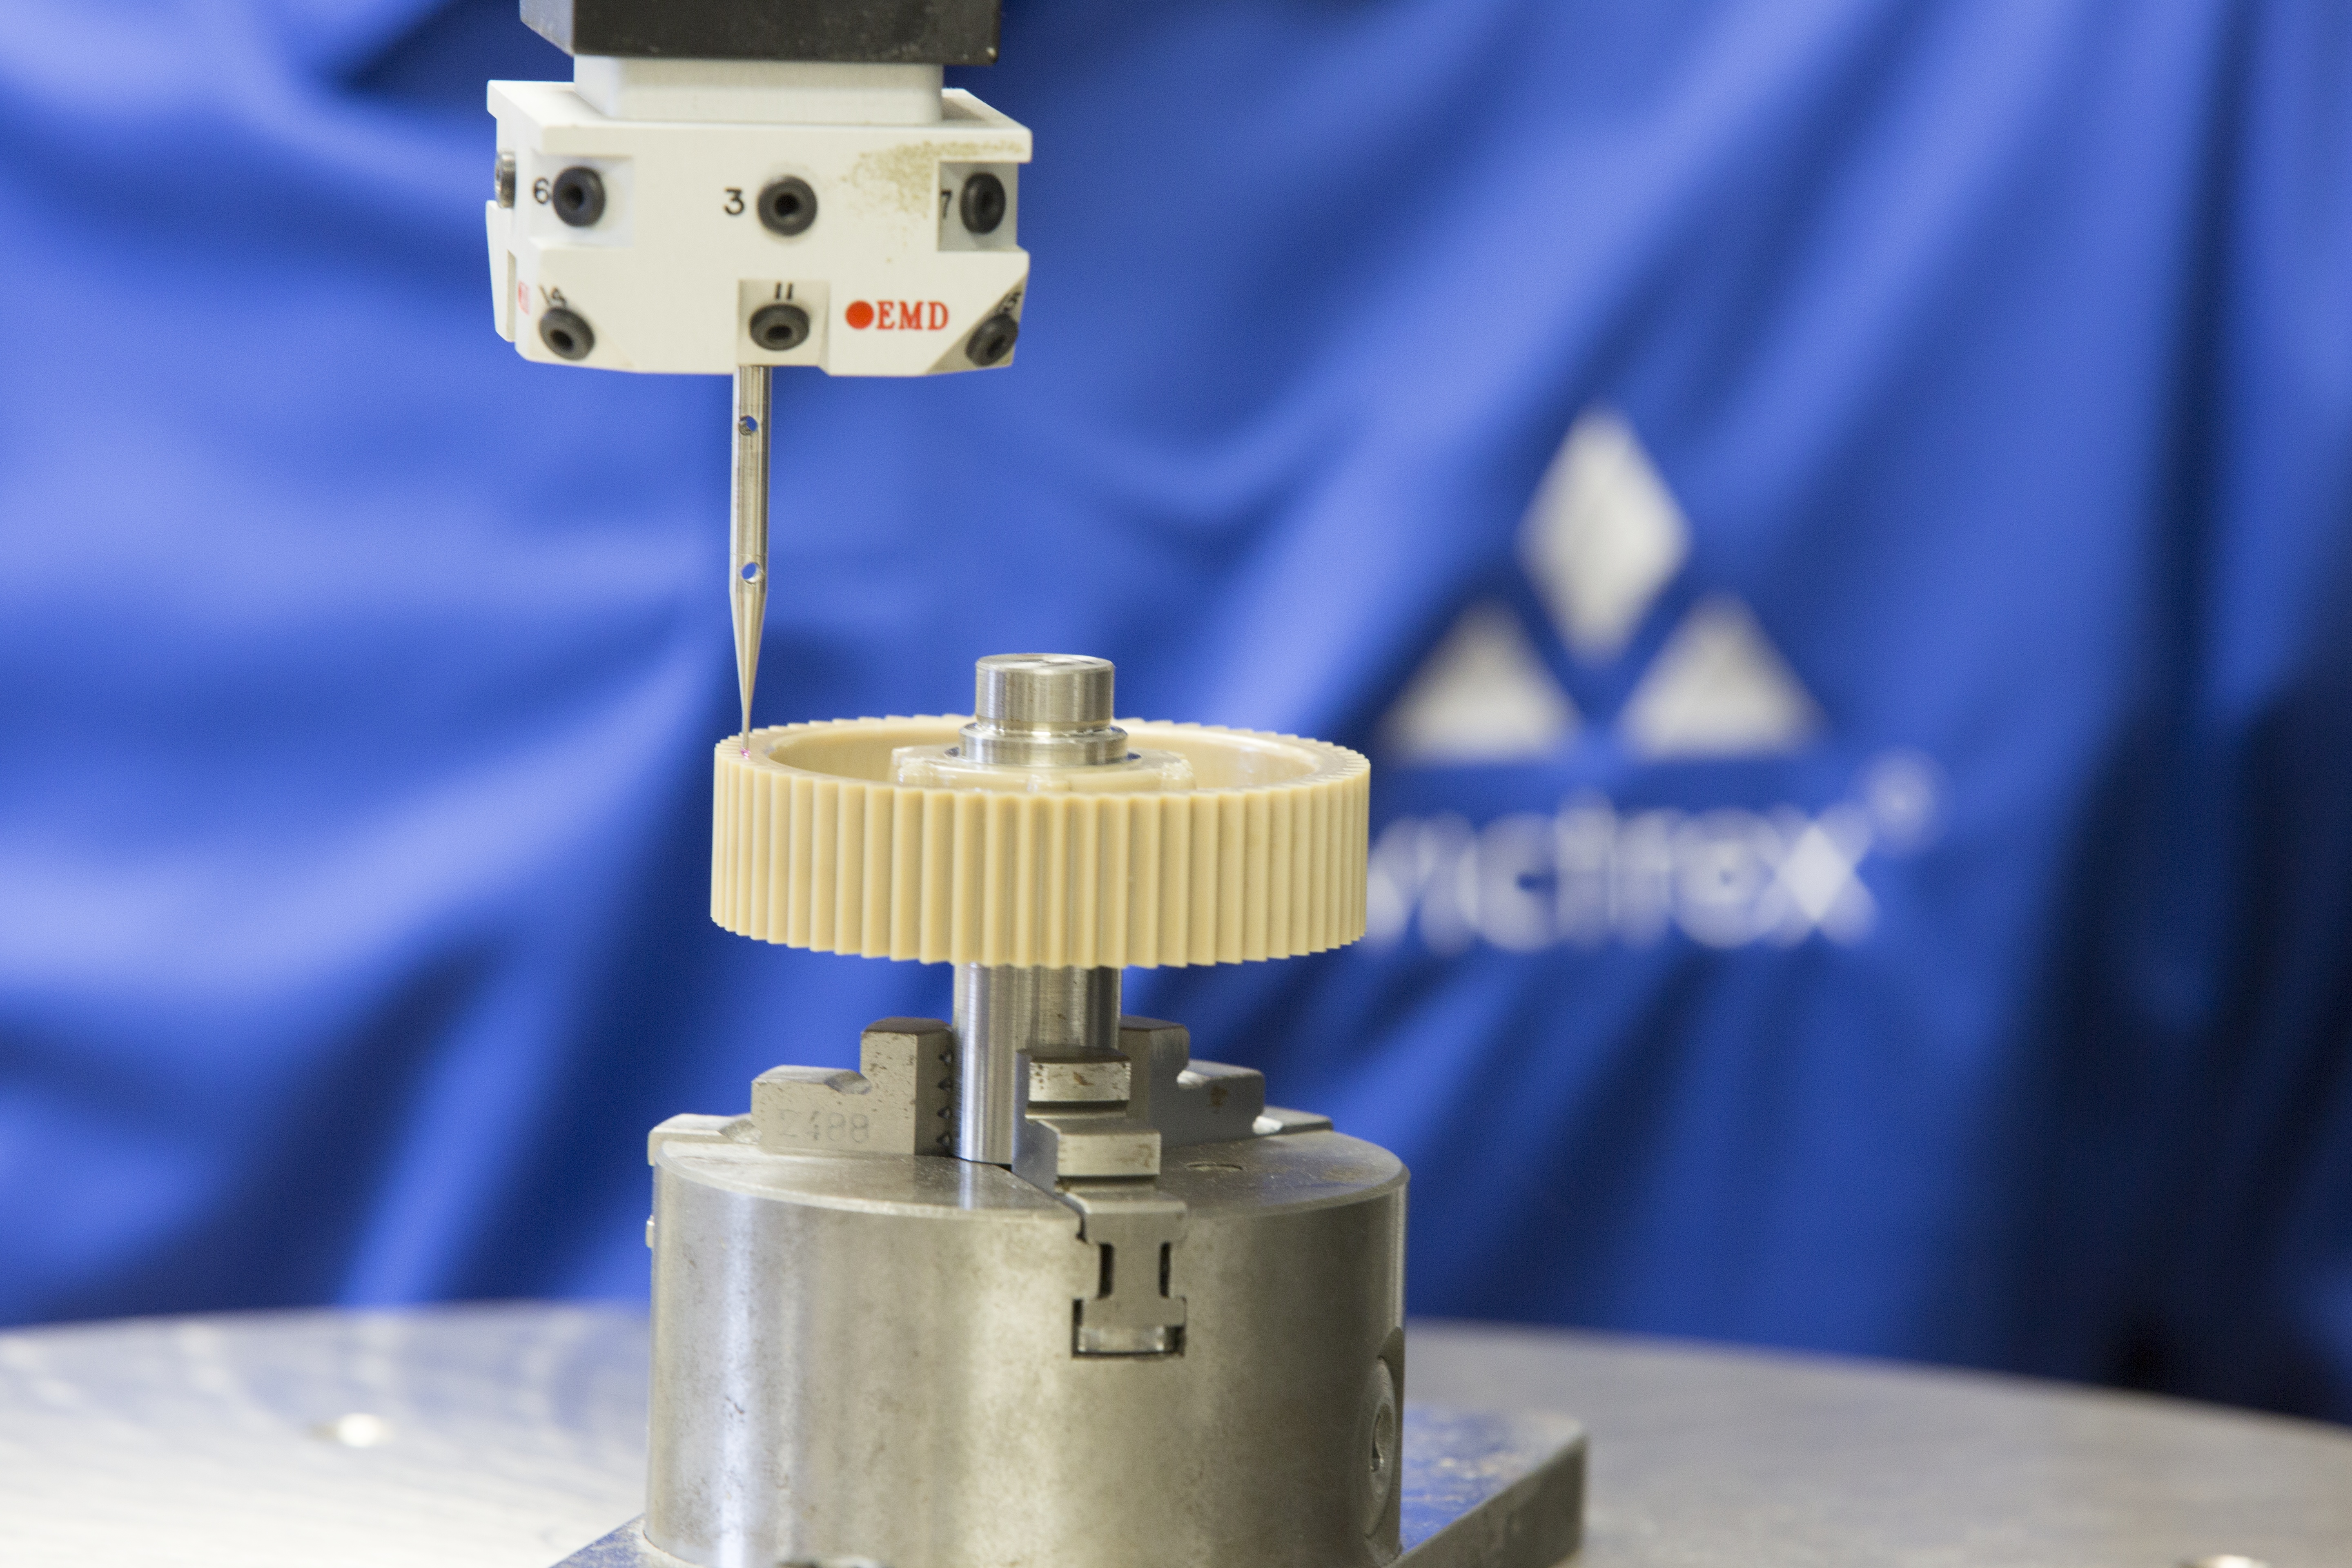 New Quality Standard Reached for Manufacture of Gears